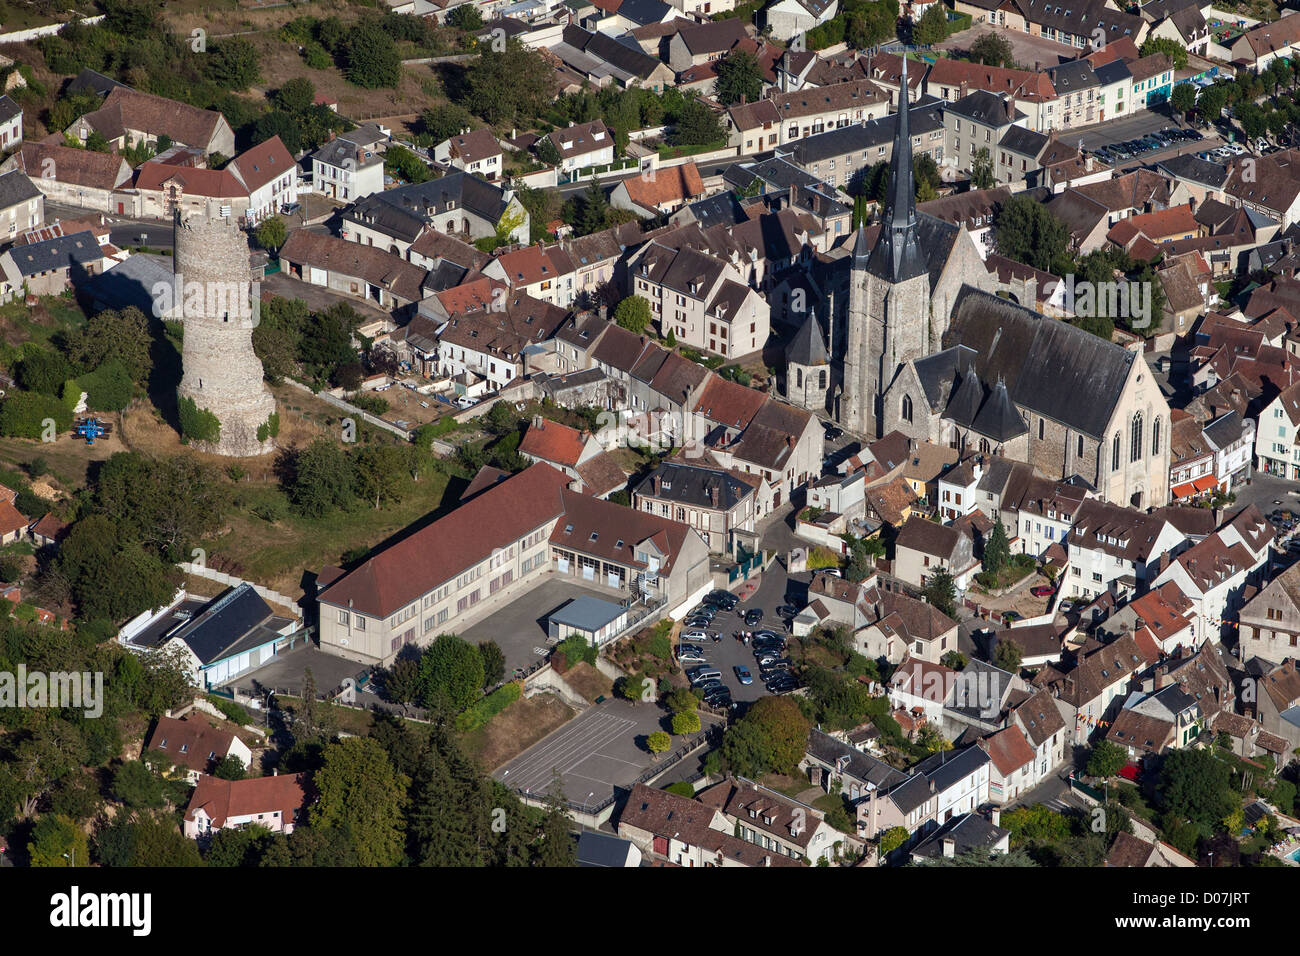 AERIAL VIE OF THE VILLAGE OF GALLARDON AND ITS FEUDAL TOWER CALLED THE 'SHOULDER OF GALLARDON' EURE-ET-LOIR - Stock Image